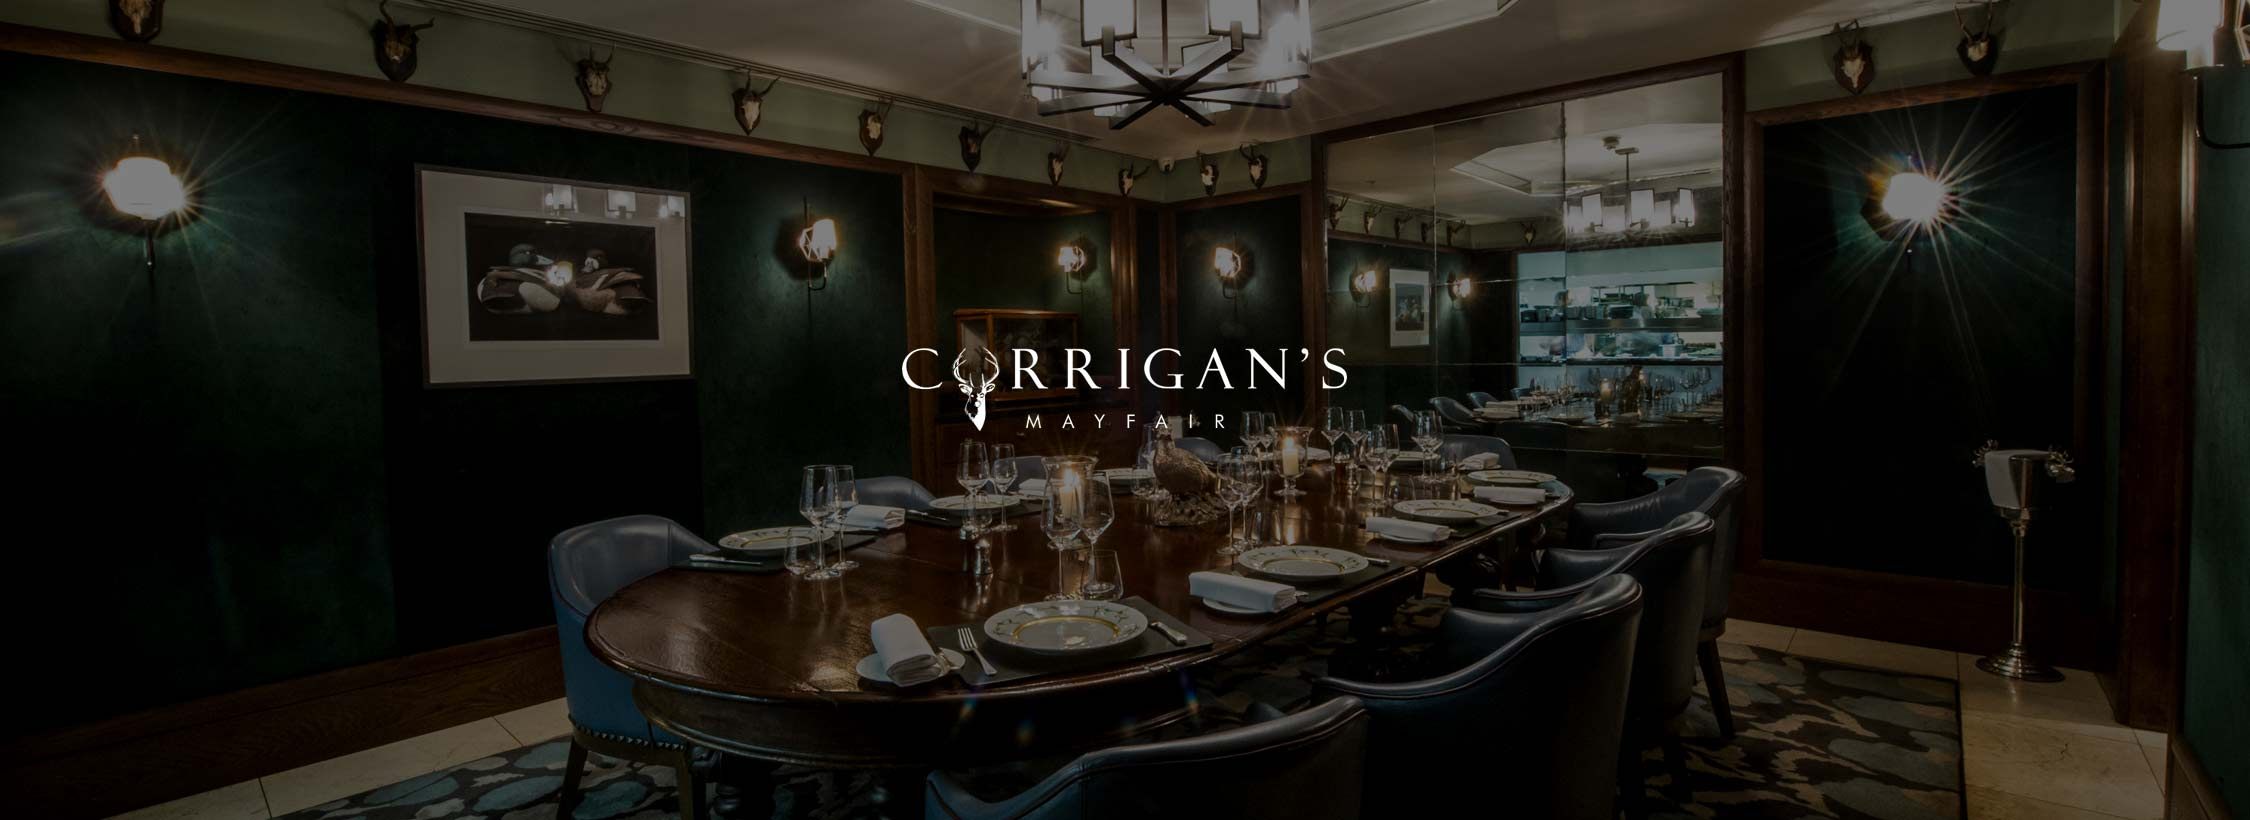 restaurants-supplied-corrigans-mayfair-bg